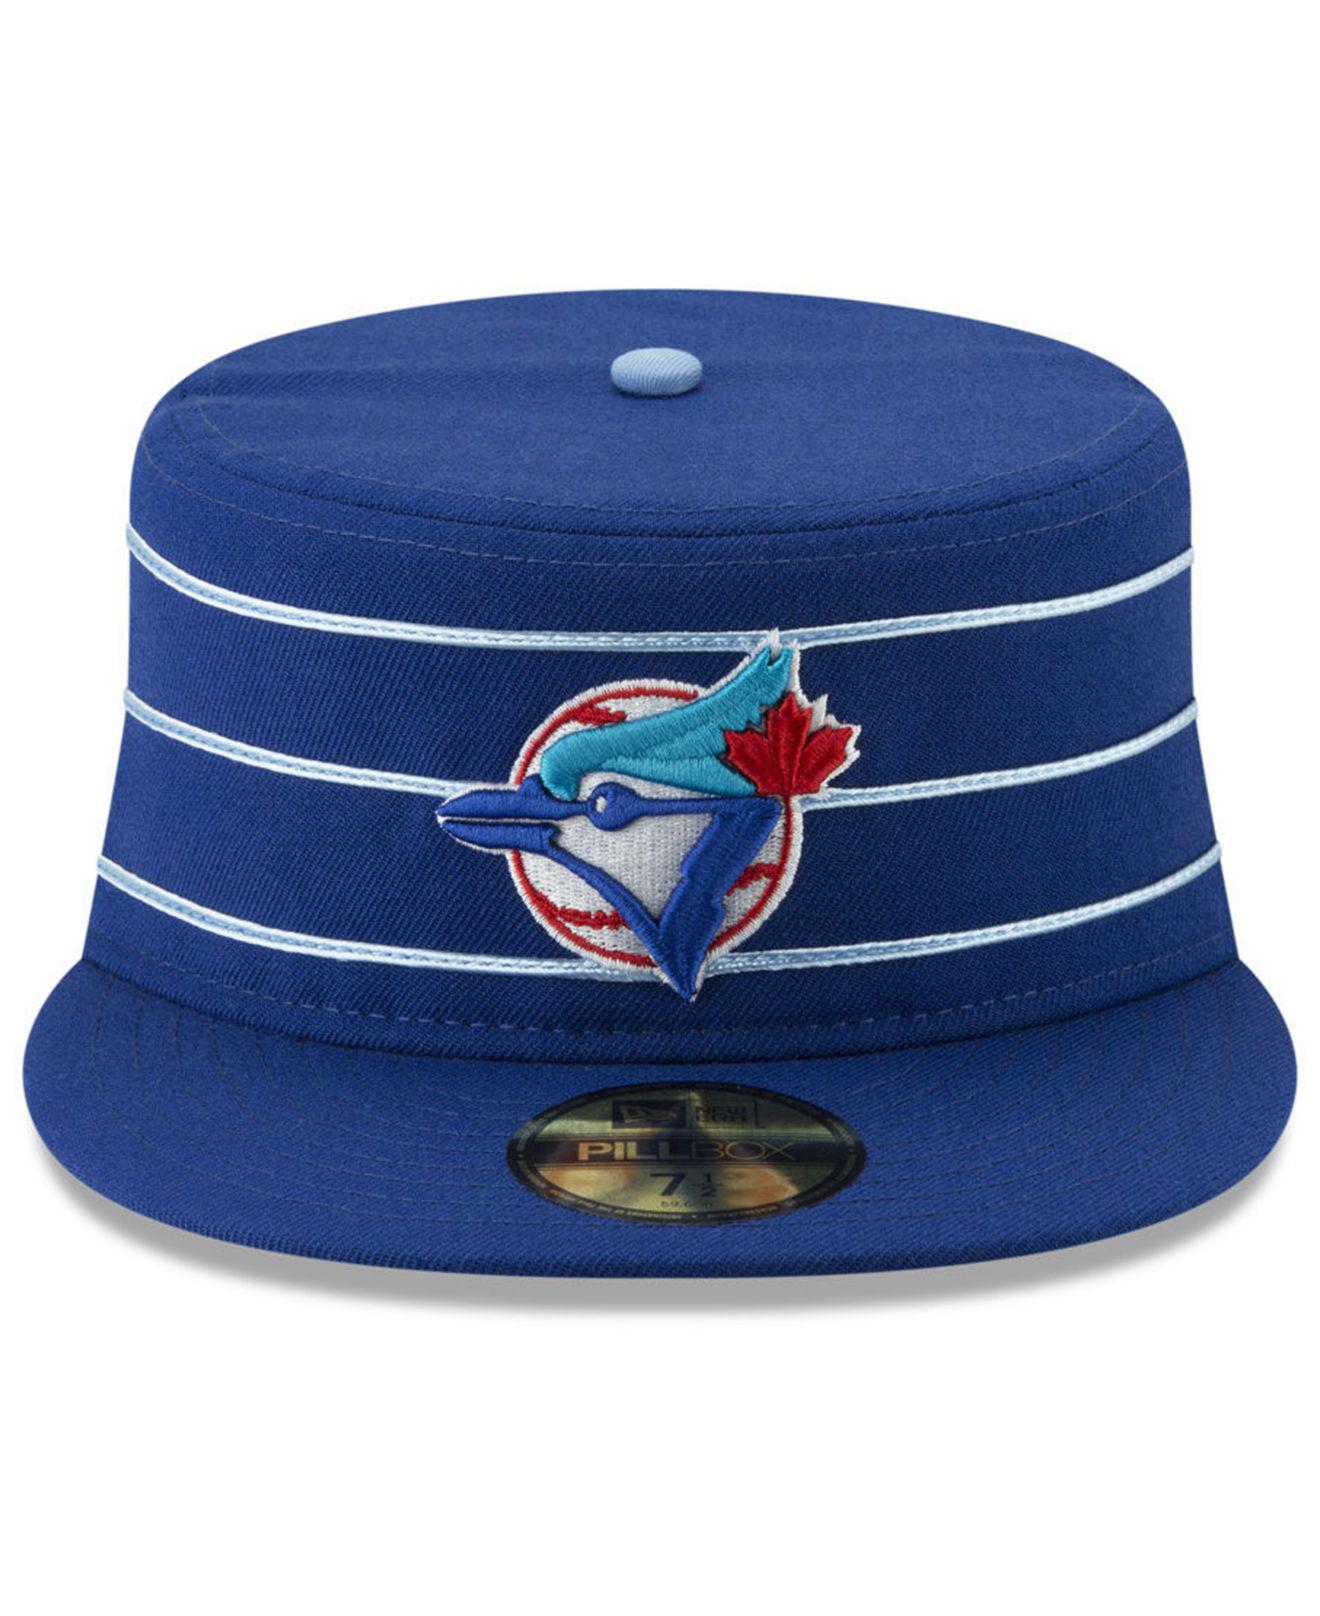 premium selection ad5d4 058c0 KTZ Toronto Blue Jays Pillbox 59fifty-fitted Cap in Blue for Men - Lyst